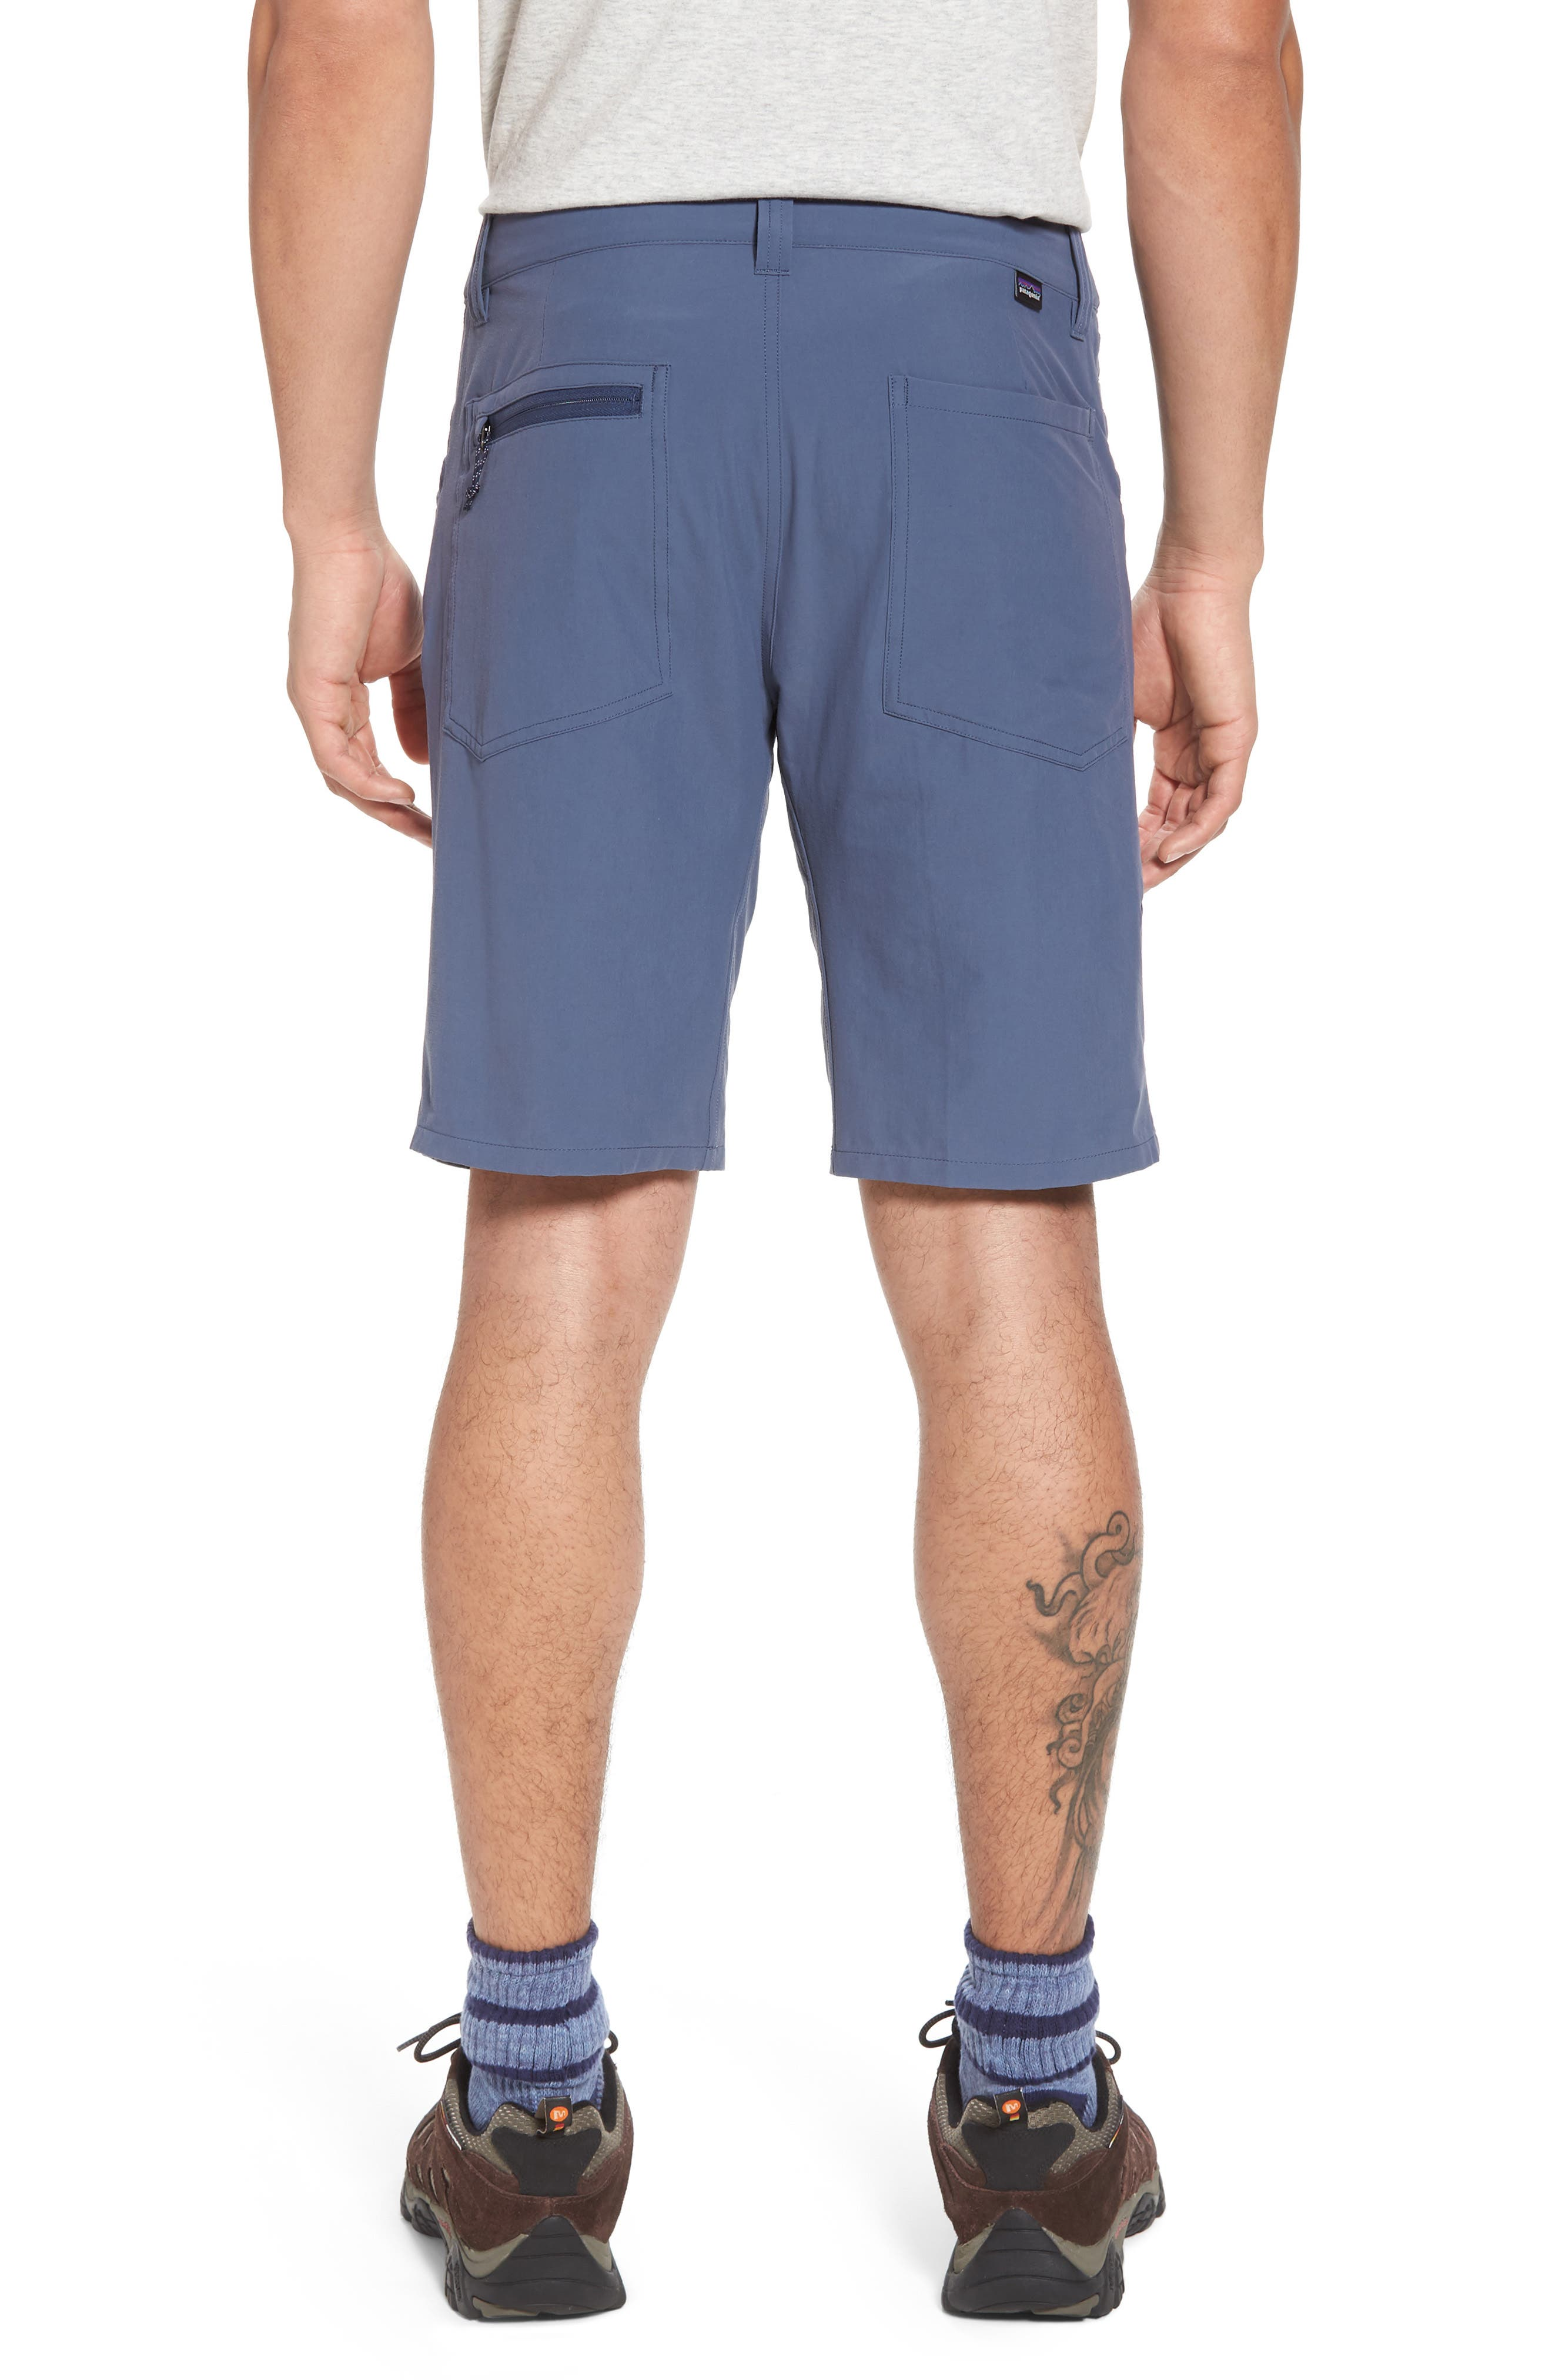 Quandary Shorts,                             Alternate thumbnail 2, color,                             Dolomite Blue